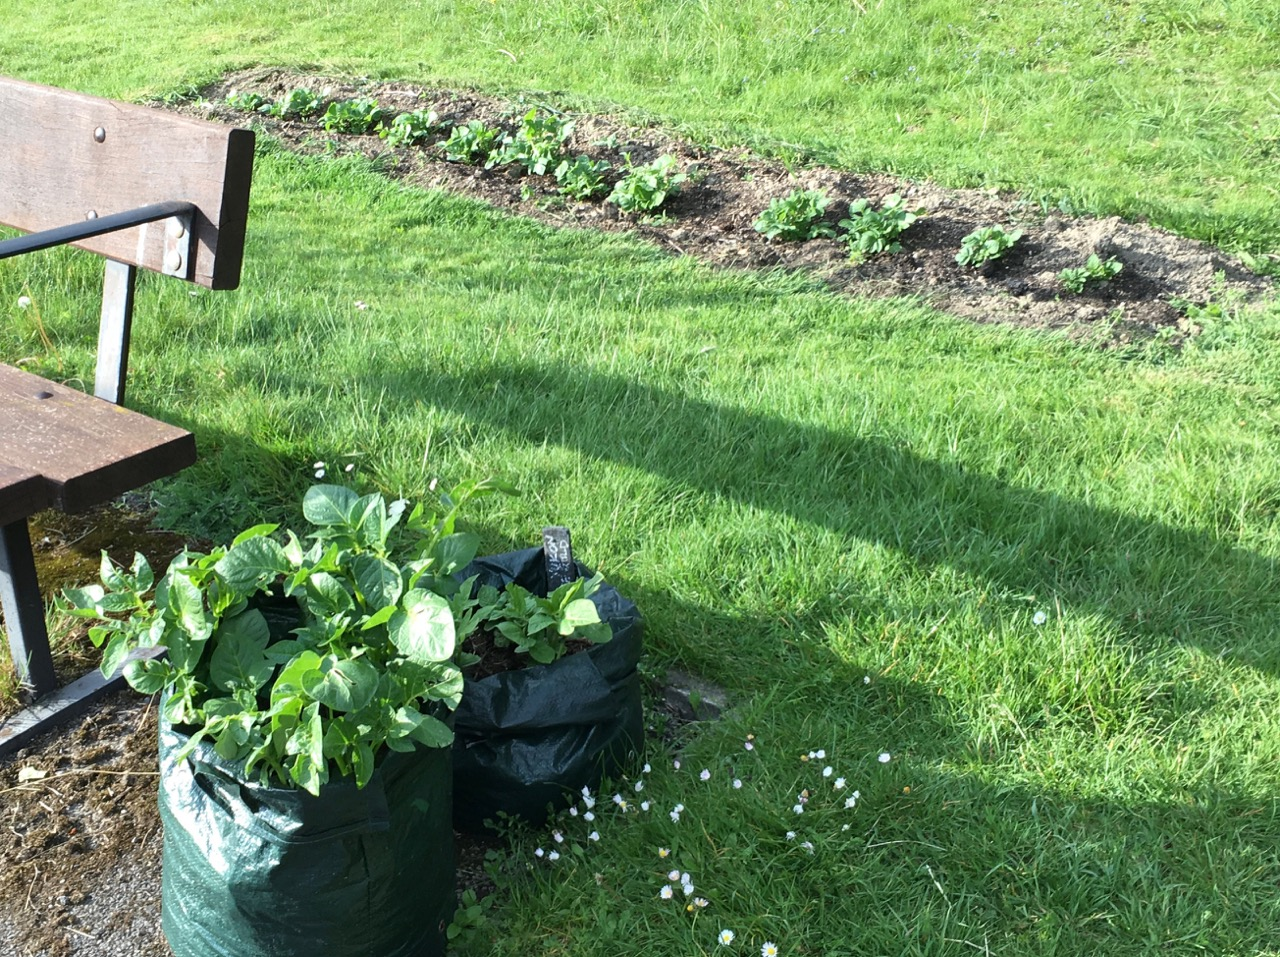 We have more kinds of potatoes growing this year, in the ground, bags and pallet planters.